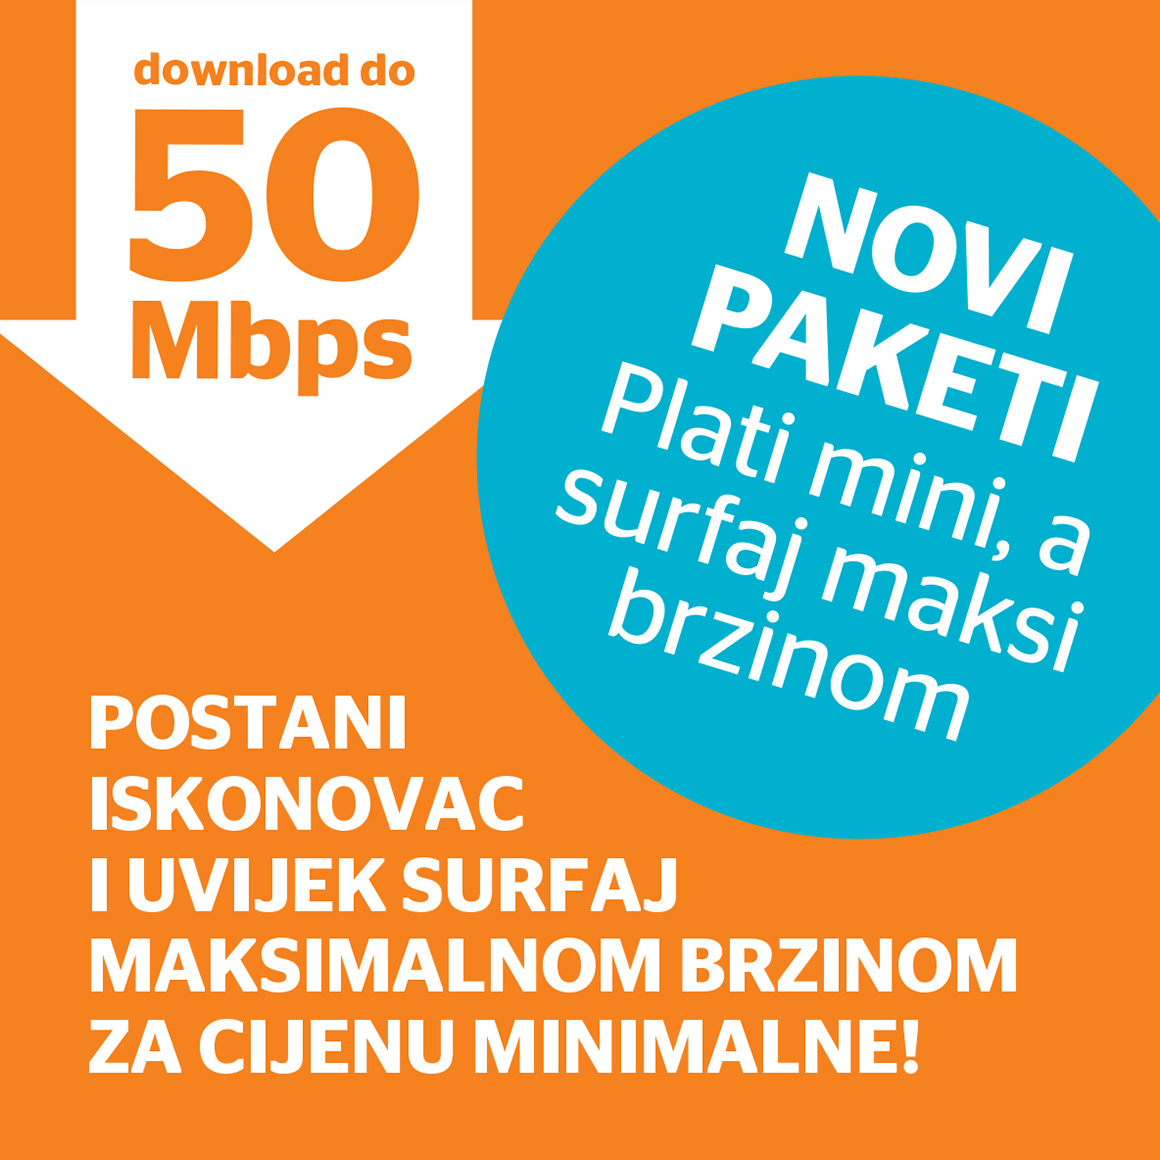 plati mini, surfaj maksi